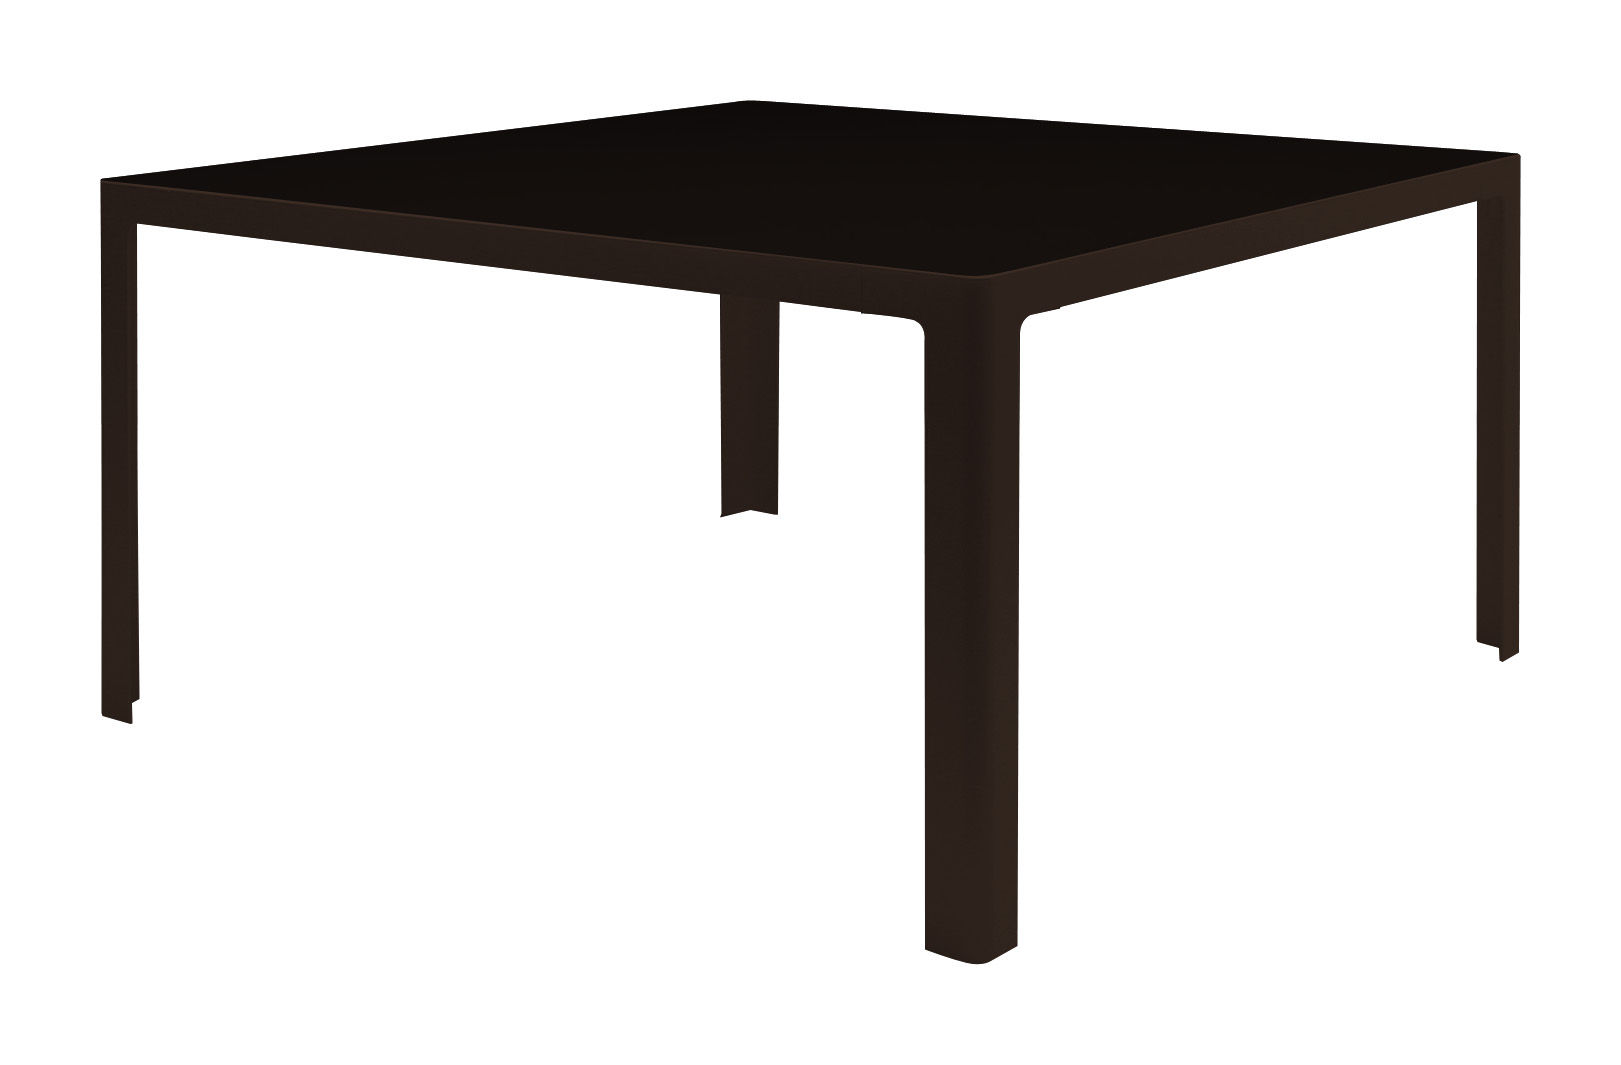 Furniture - Dining Tables - Metisse Table carrée - square - 140 x 140 cm by Zeus - Black top / Black copper frame - Glass, Steel